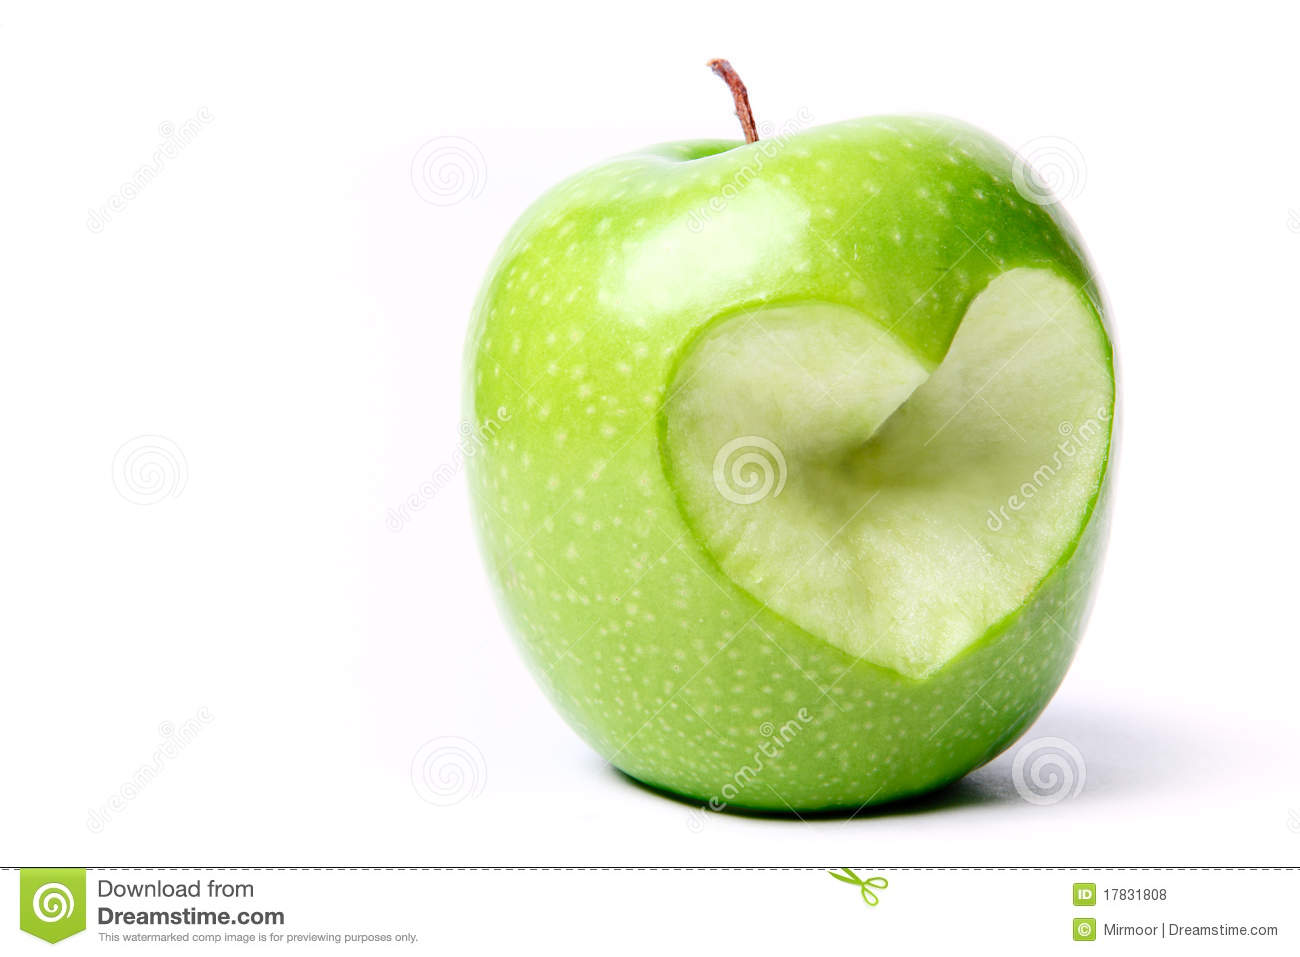 how to properly cut an apple